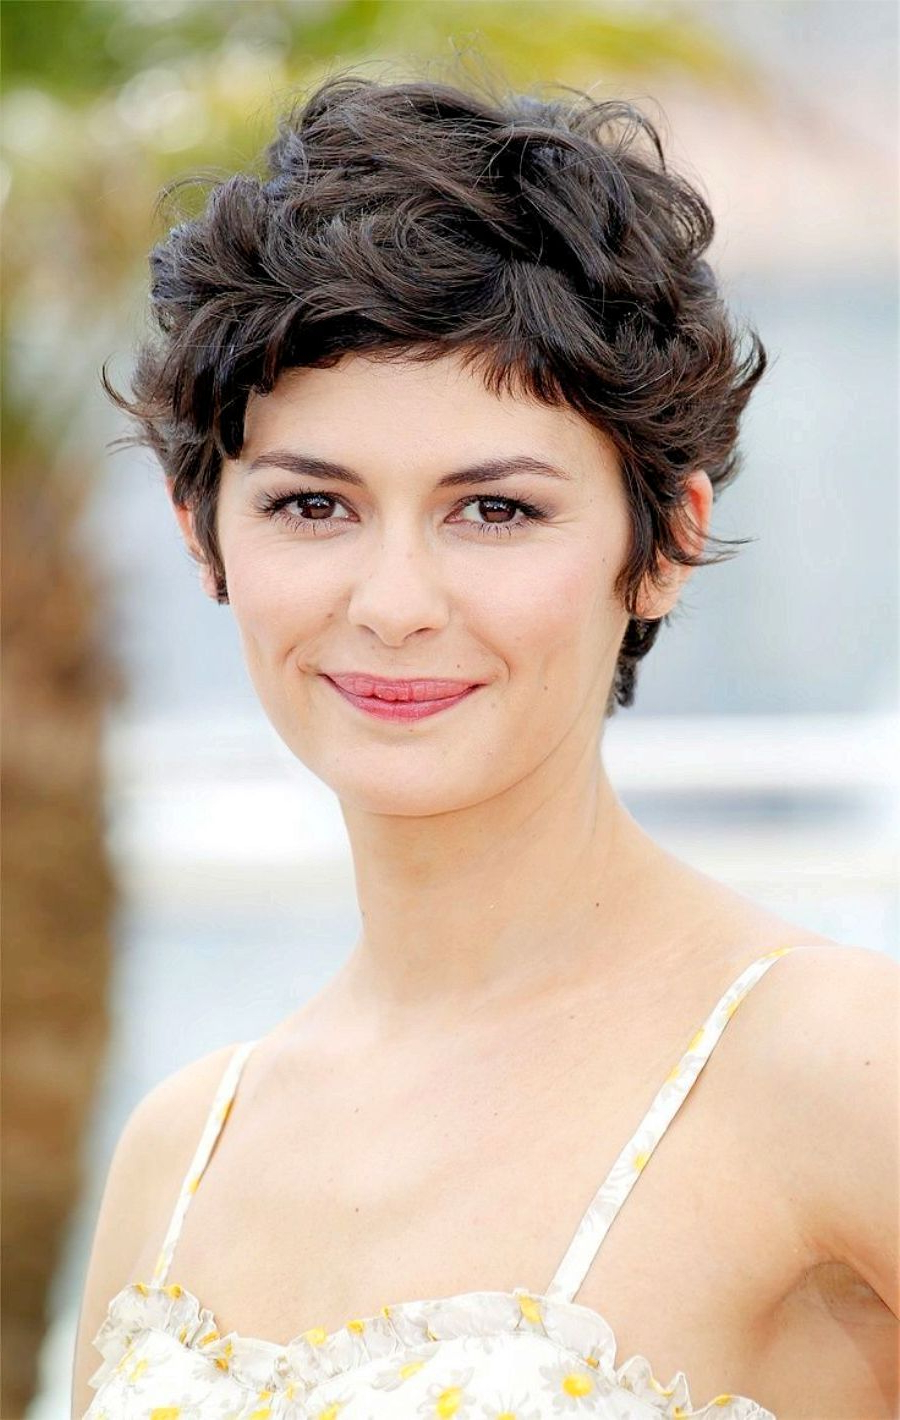 Curly Pixie Haircut | Hairstyles | Pinterest | Hair, Curly Hair In Pixie Haircuts With Short Thick Hair (View 9 of 20)